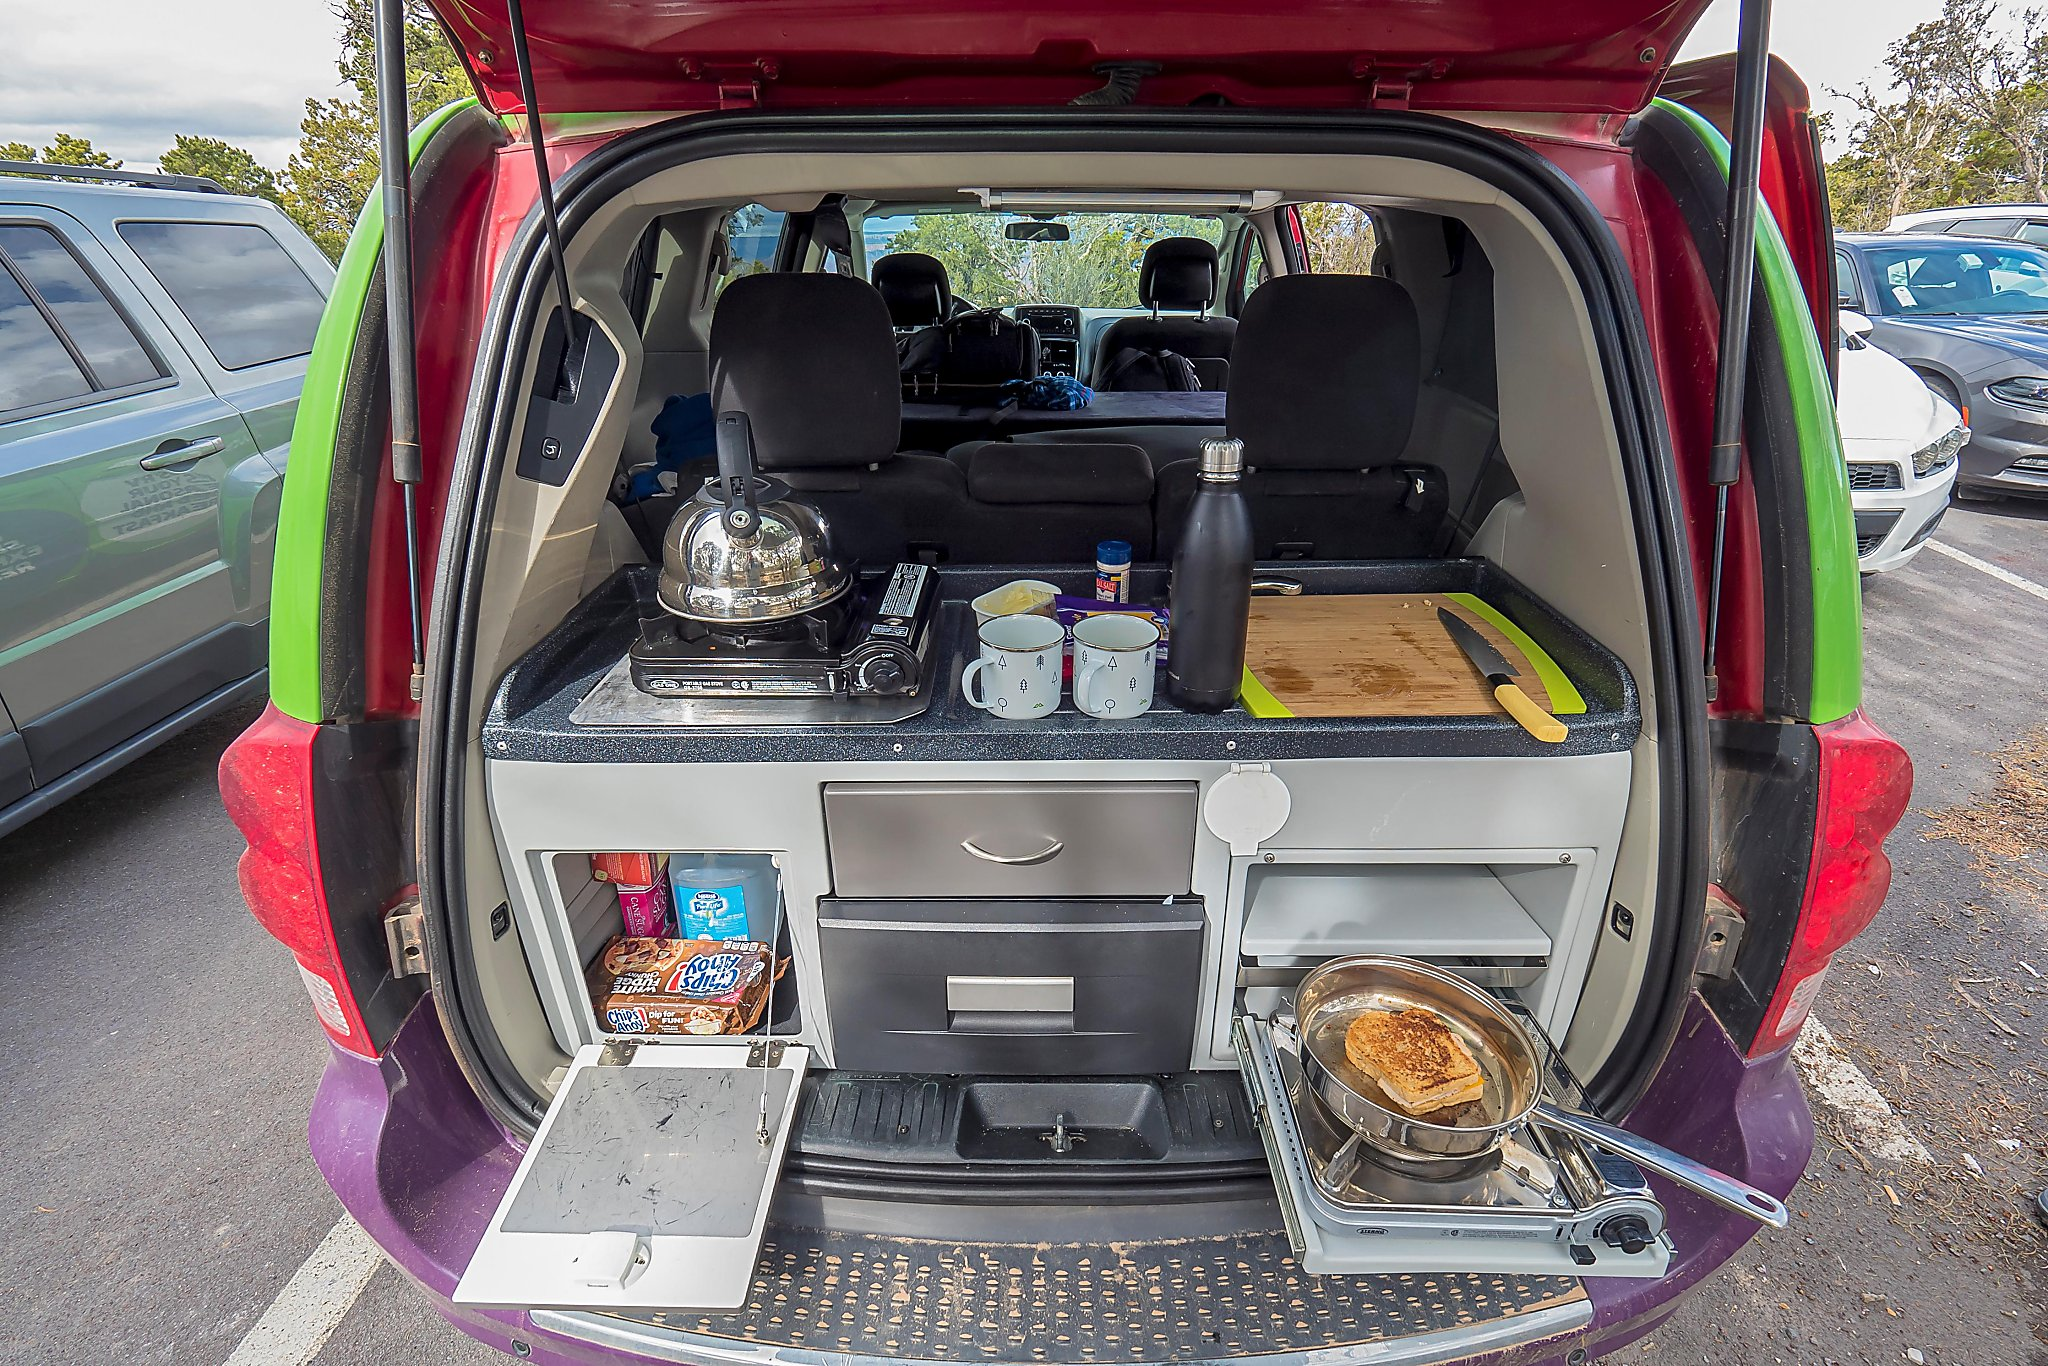 Are Jucy camper vans worth the effort? - SFGate